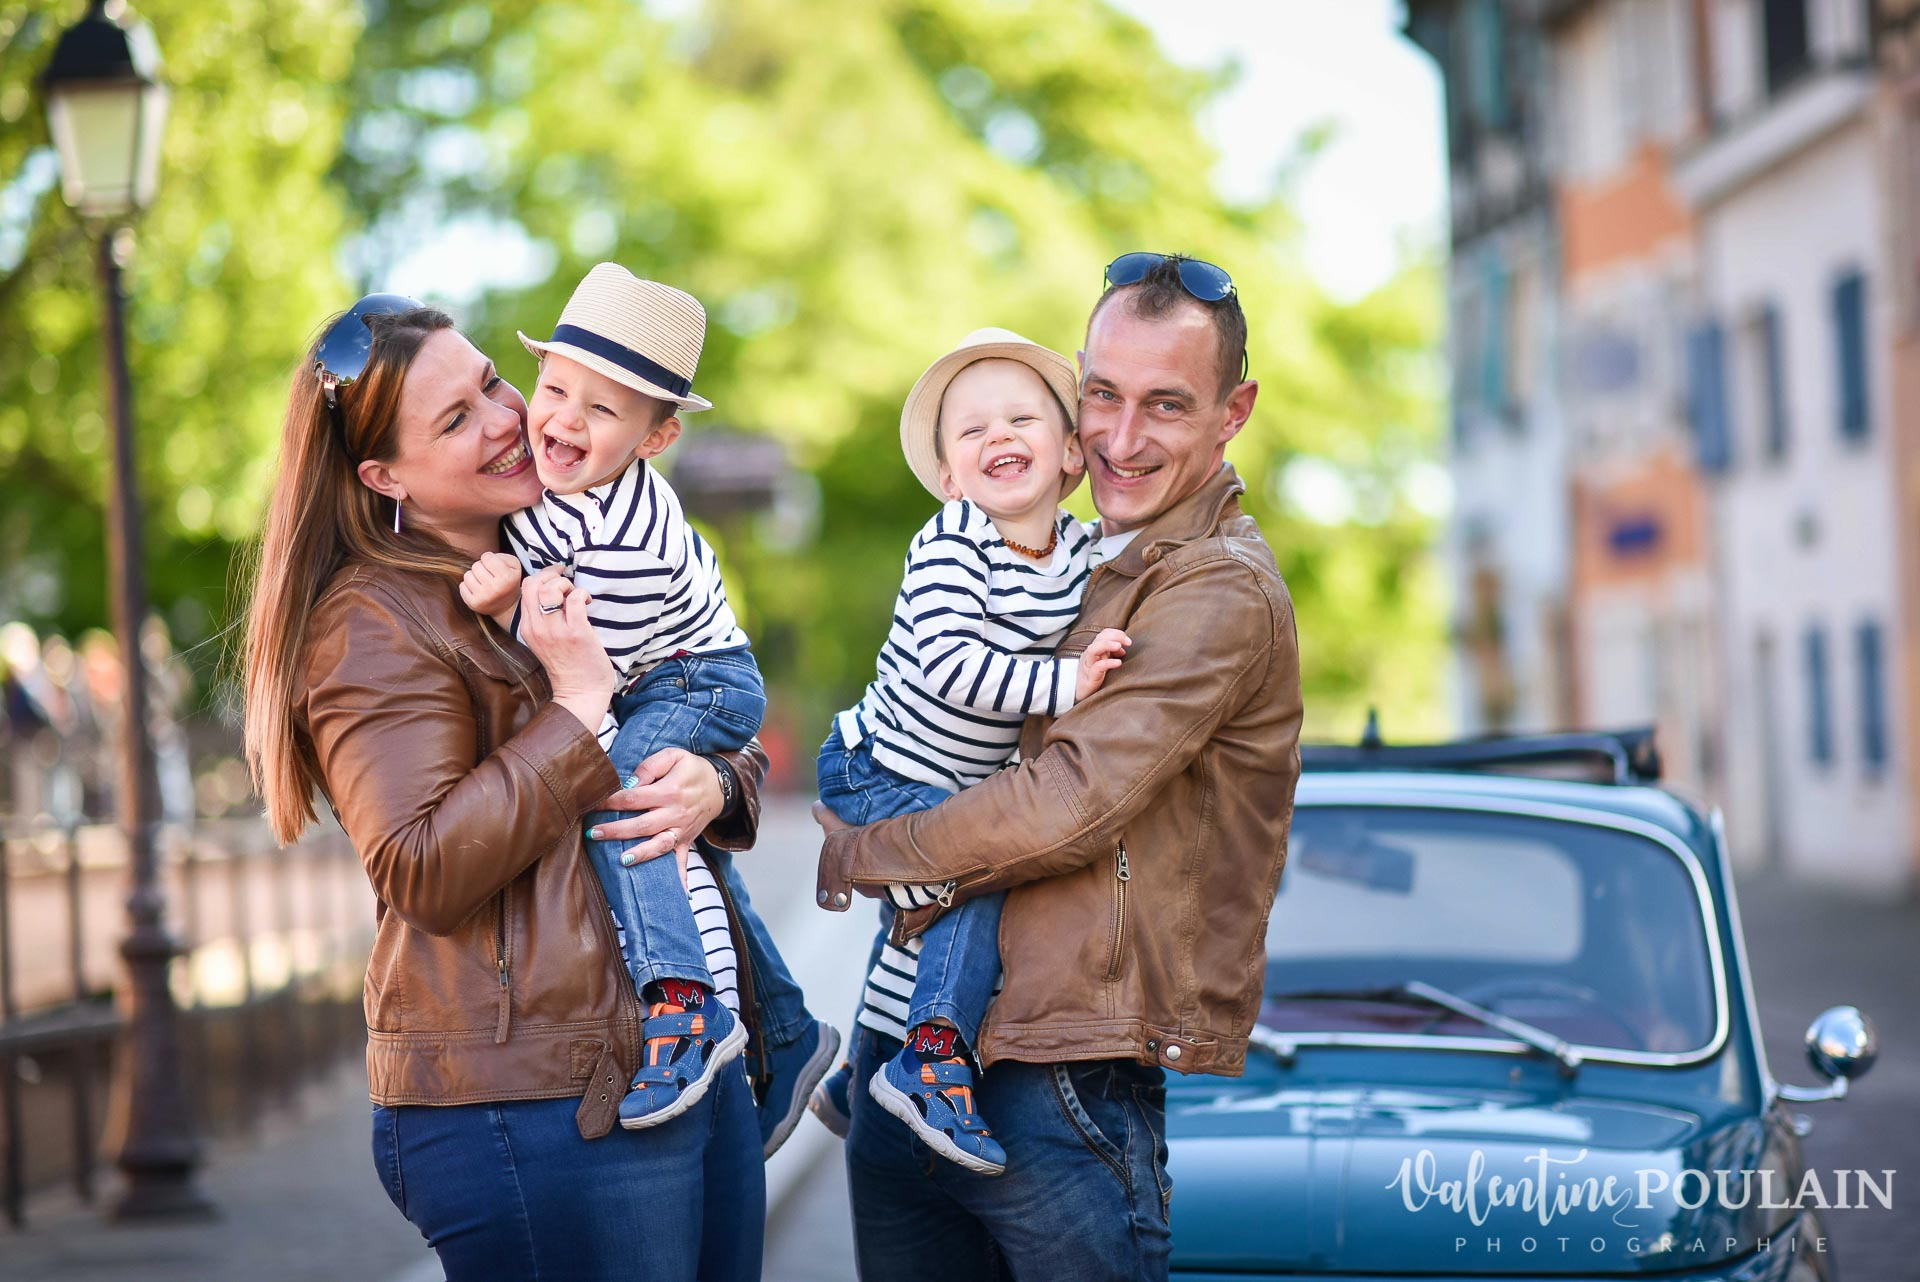 Shooting famille voiture ancienne fiat 500 smiles